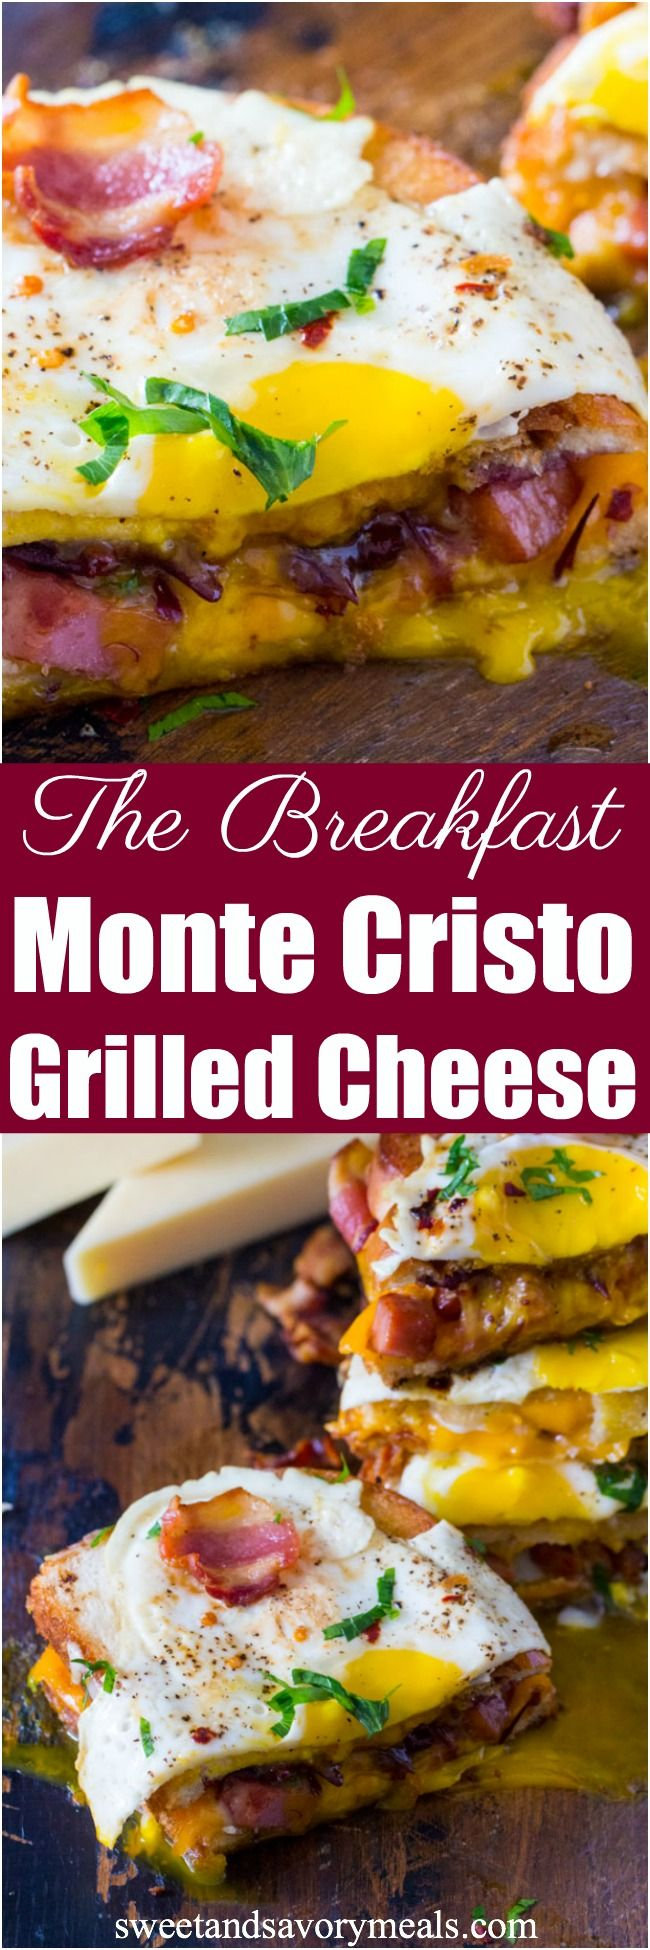 Monte Cristo Grilled Cheese sandwiches are deliciously stuffed with fried ham, bacon, cheese and topped with a perfect runny egg. #breakfastpower #grilledcheese #ad